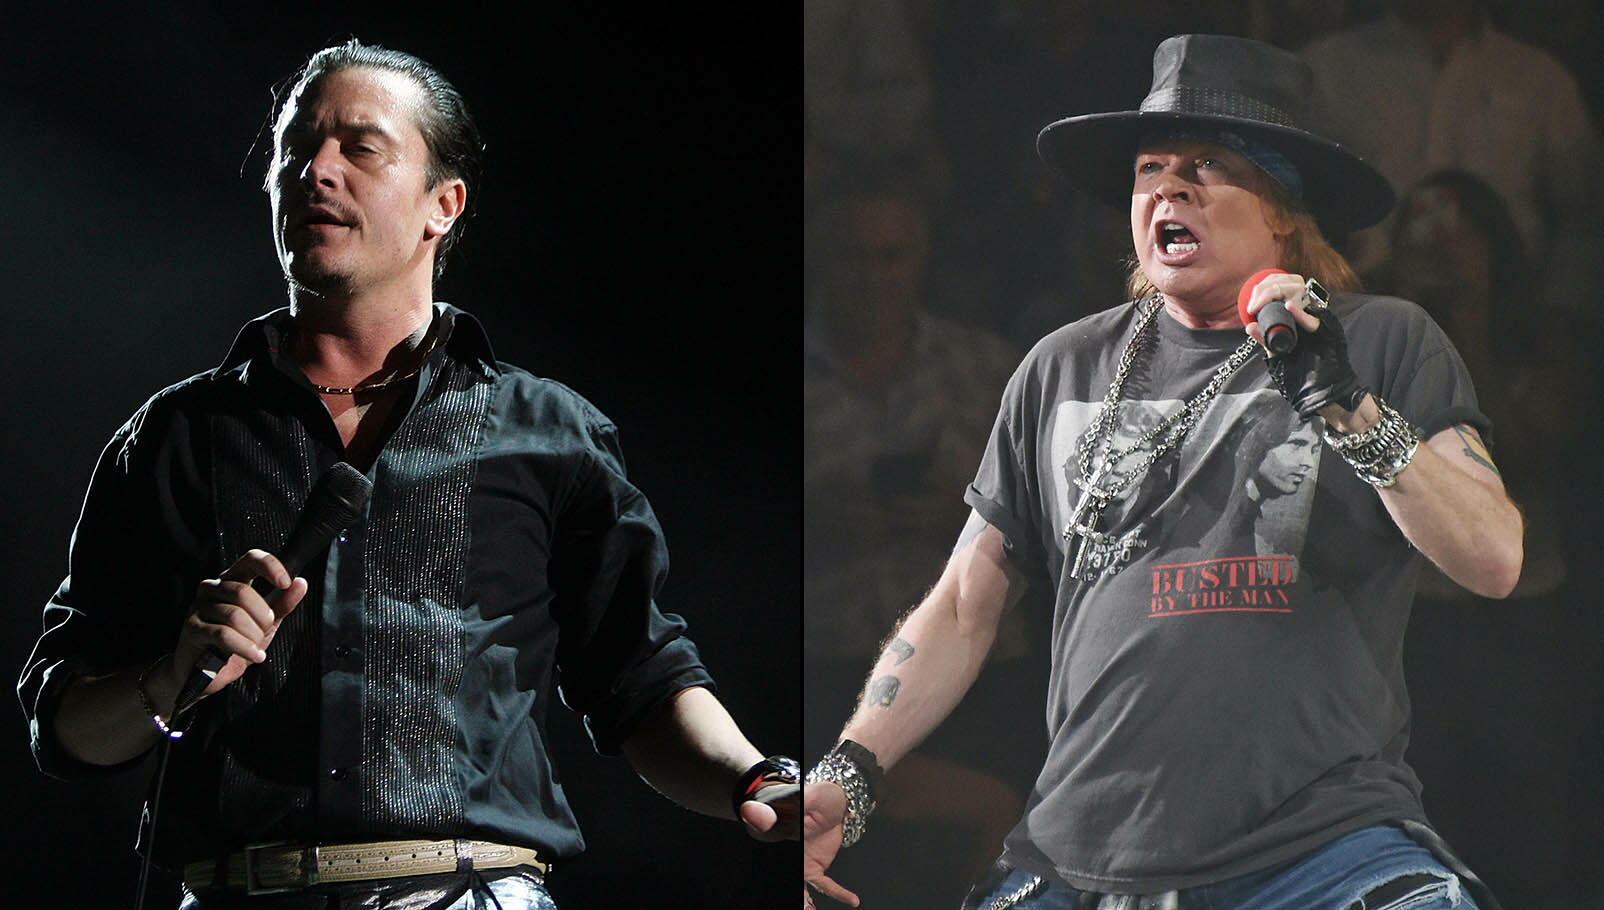 Axl Rose Couldn't Understand in the '90s Why Alternative Bands Hated Him